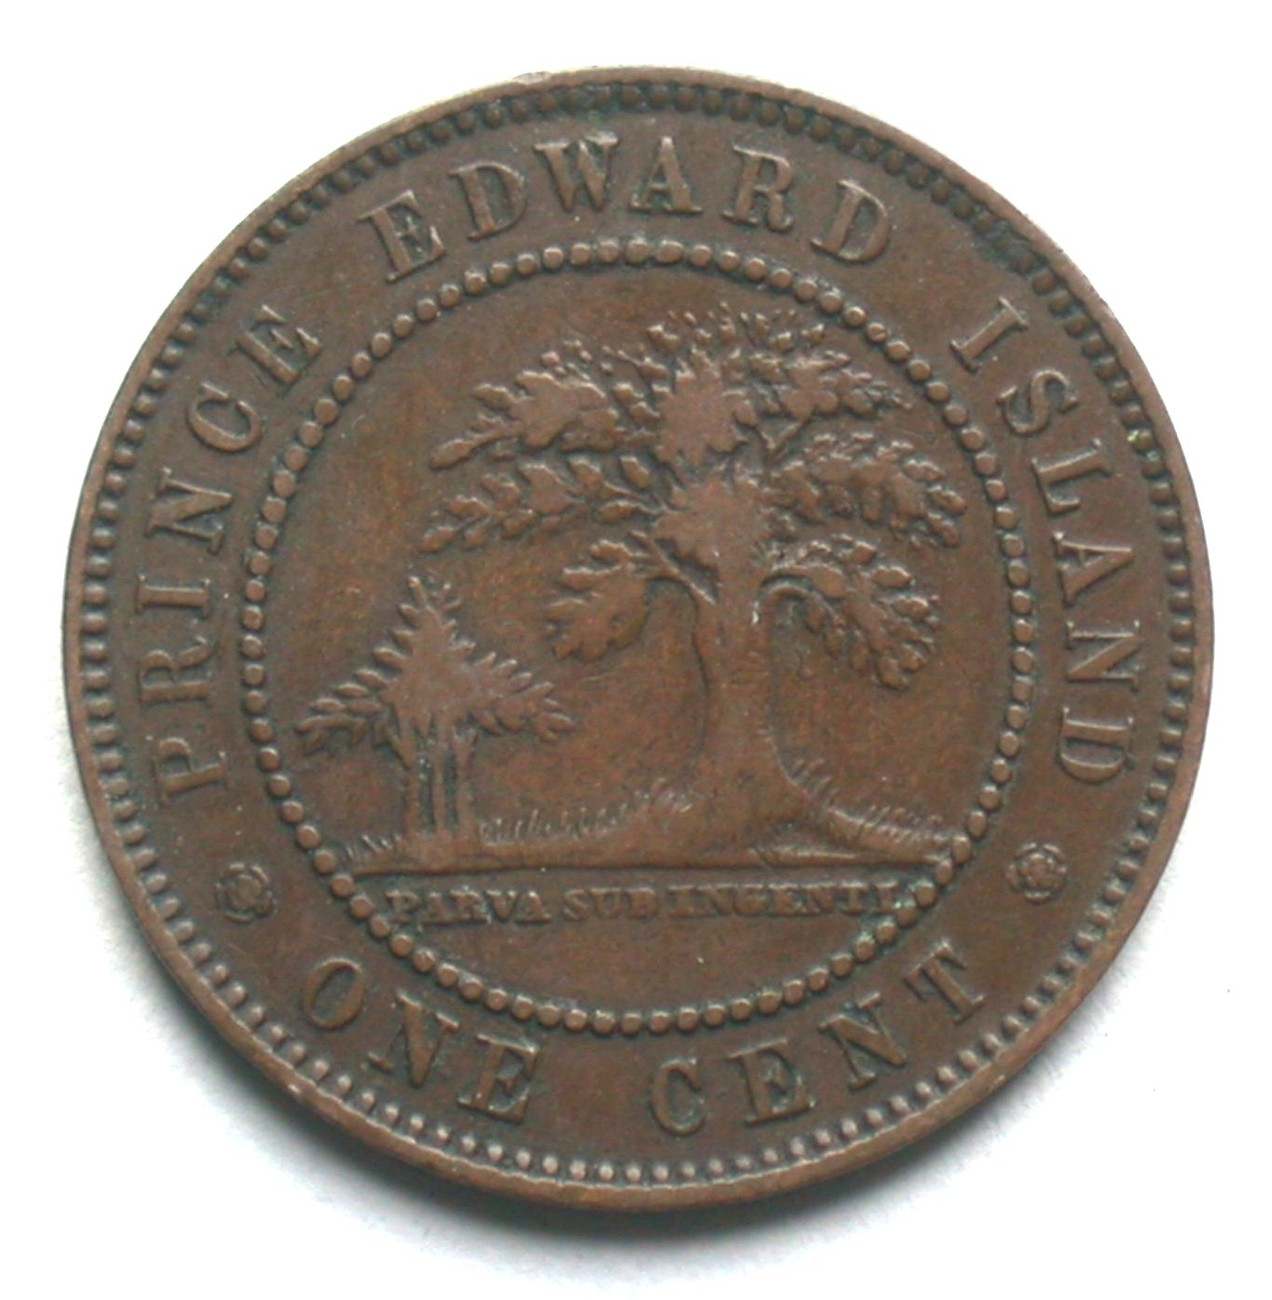 1871 Prince Edward Island One Cent Coin Queen Victoria 1 PEI image 2